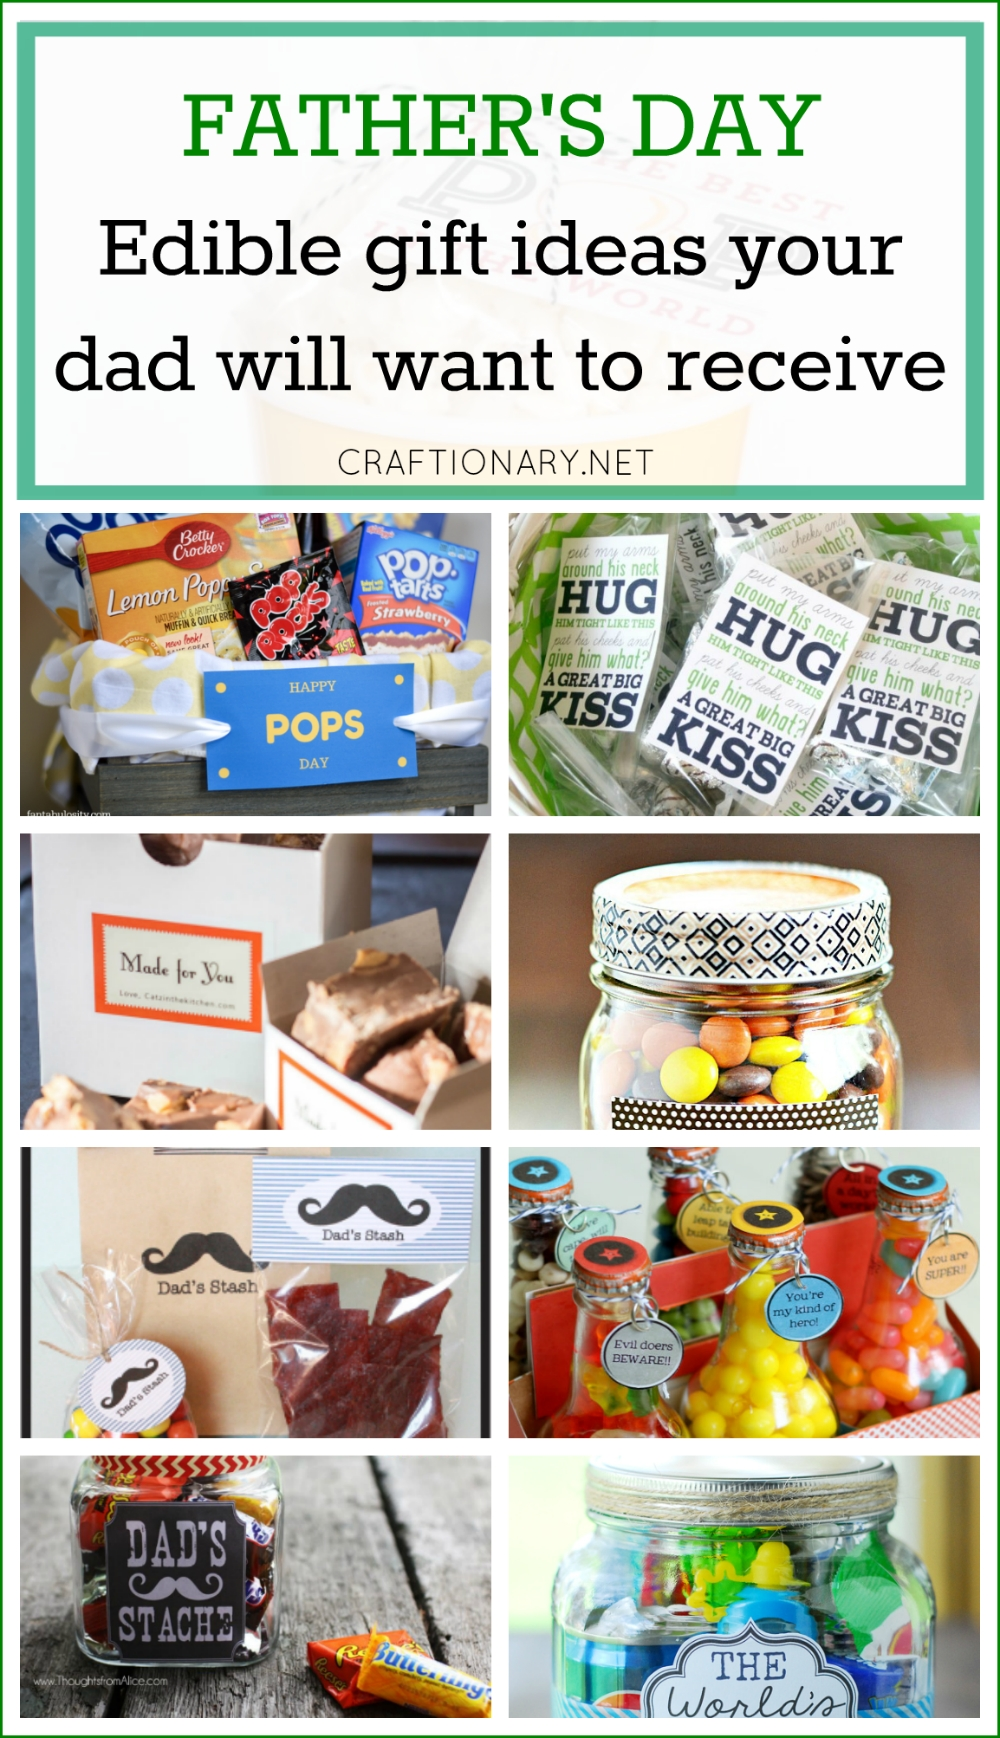 10 Trendy Cheap Gift Ideas For Dad edible gift ideas for fathers day 2021